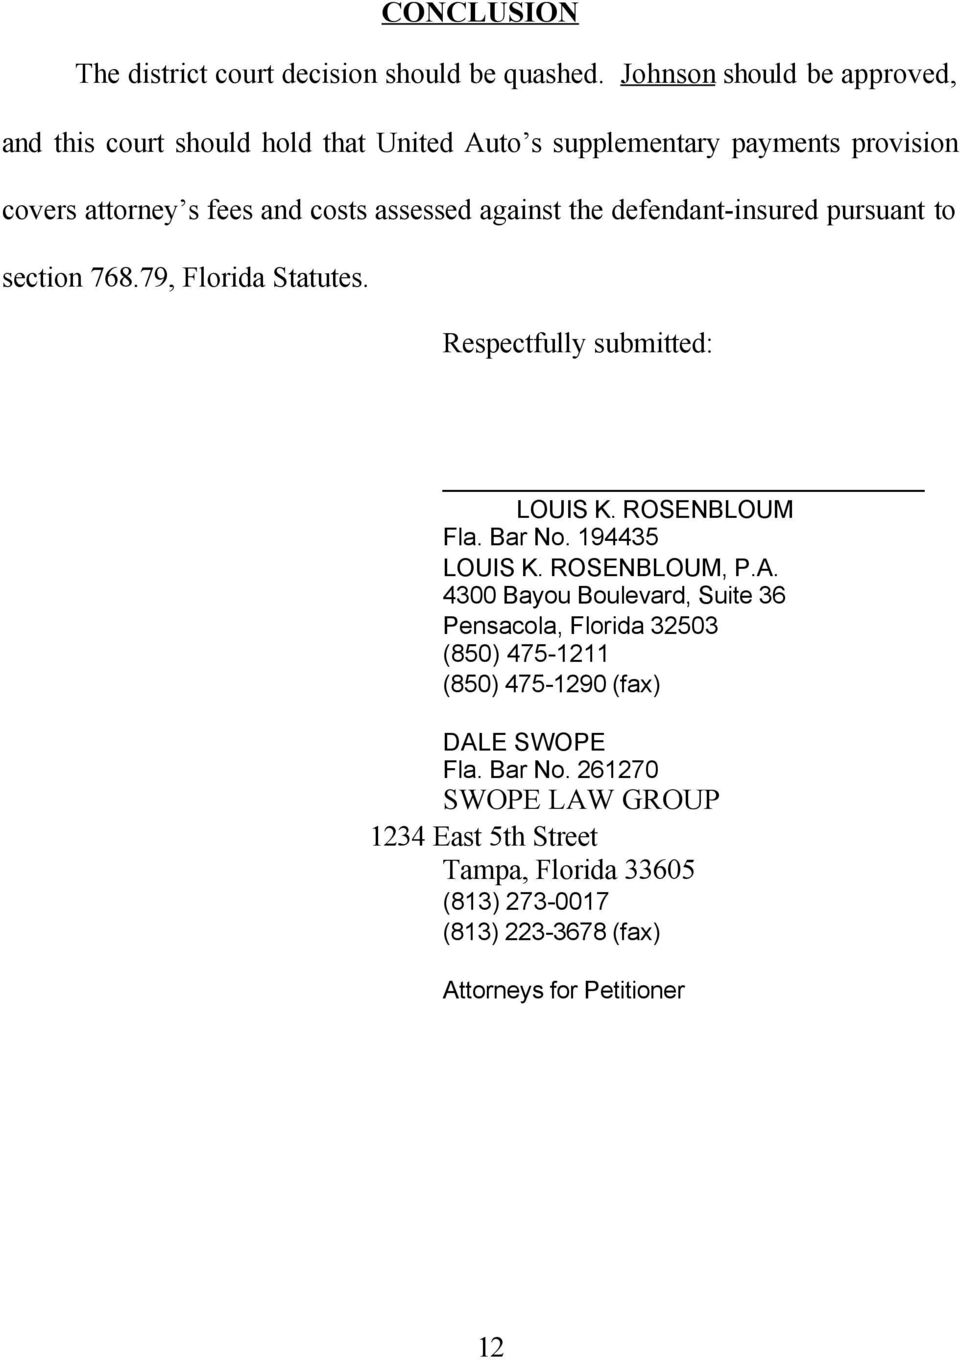 against the defendant-insured pursuant to section 768.79, Florida Statutes. Respectfully submitted: LOUIS K. ROSENBLOUM Fla. Bar No. 194435 LOUIS K.